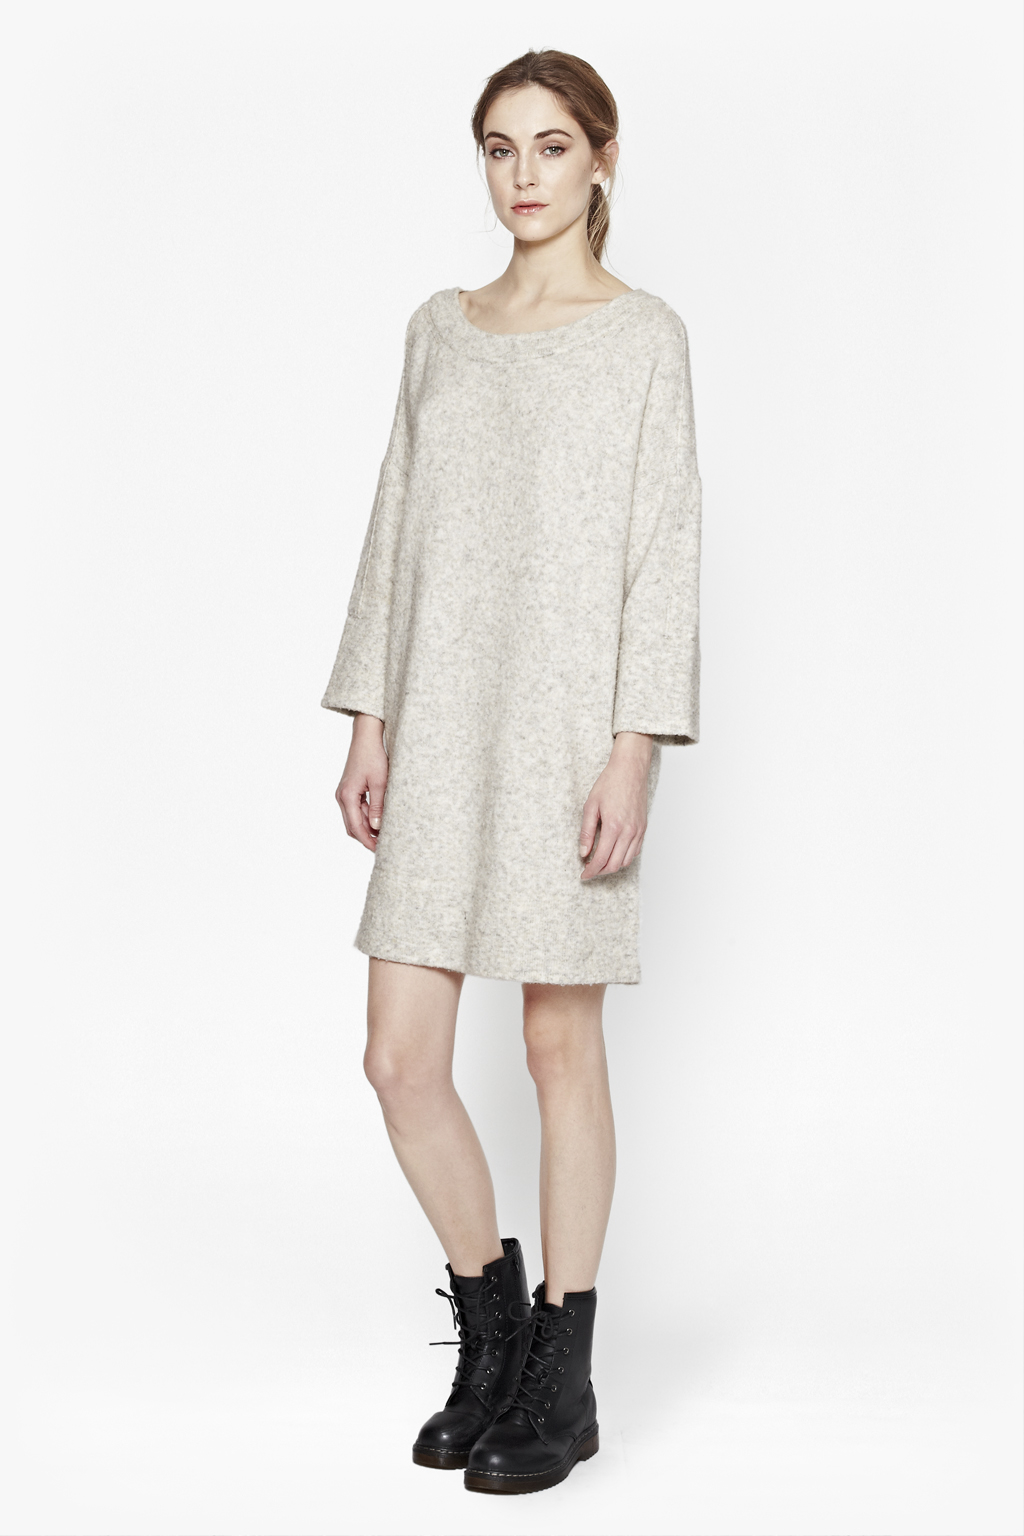 connection flossy oversized knit in white lyst